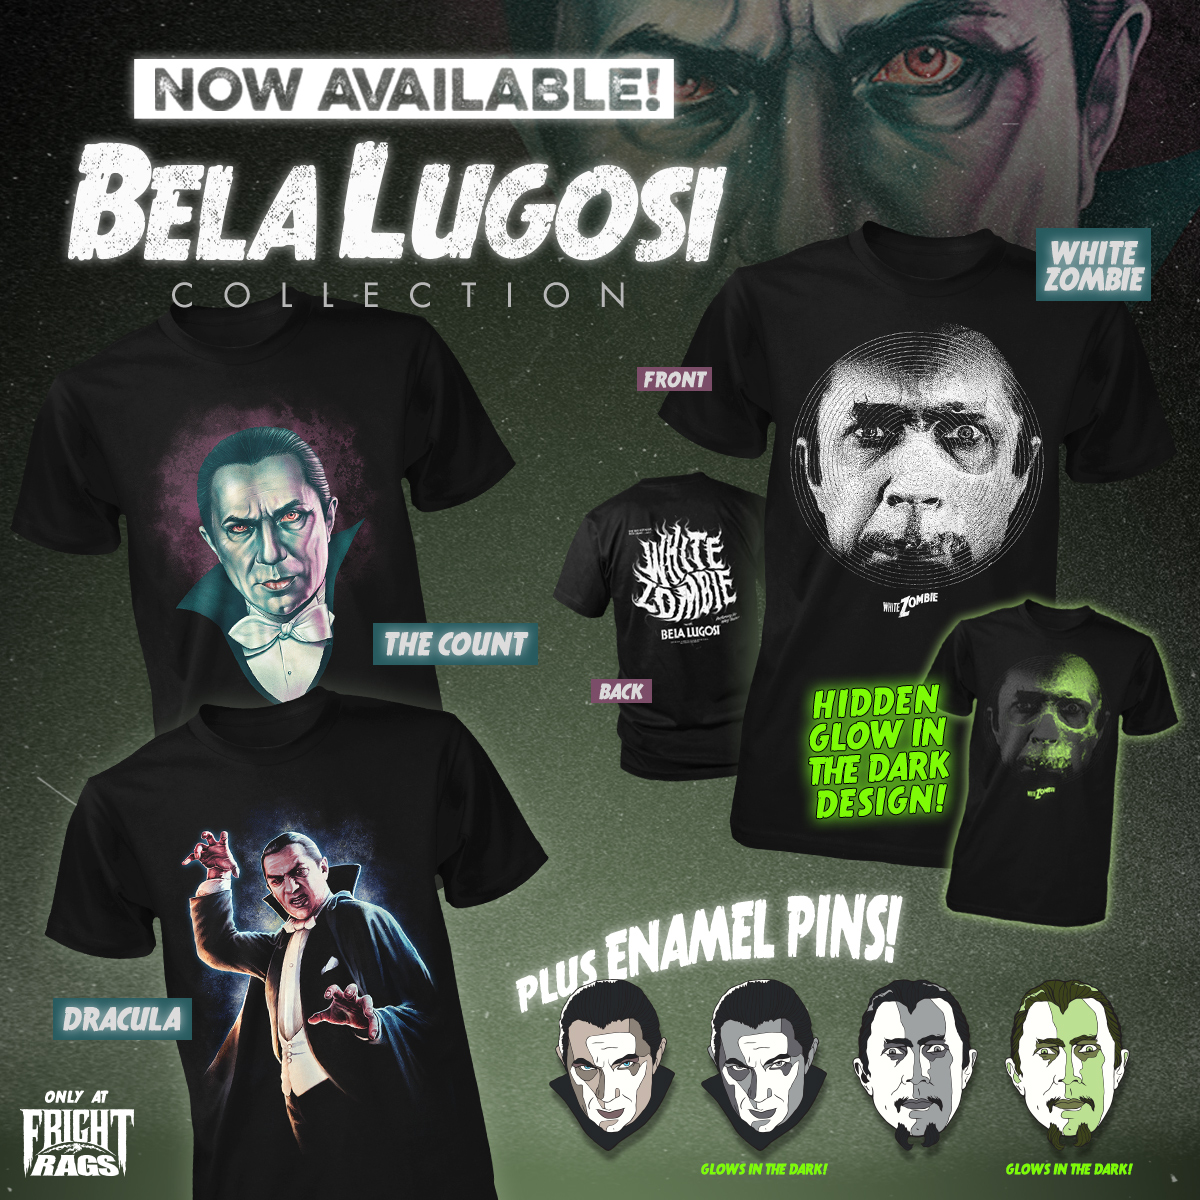 BELA LUGOSI - Fright-Rags pays tribute to one of the original horror icons with the Bela Lugosi collection. It includes three shirts and four enamel pins inspired by two of the actor's most influential roles: Dracula and White Zombie. One of the shirts and two of the pins glow in the dark.